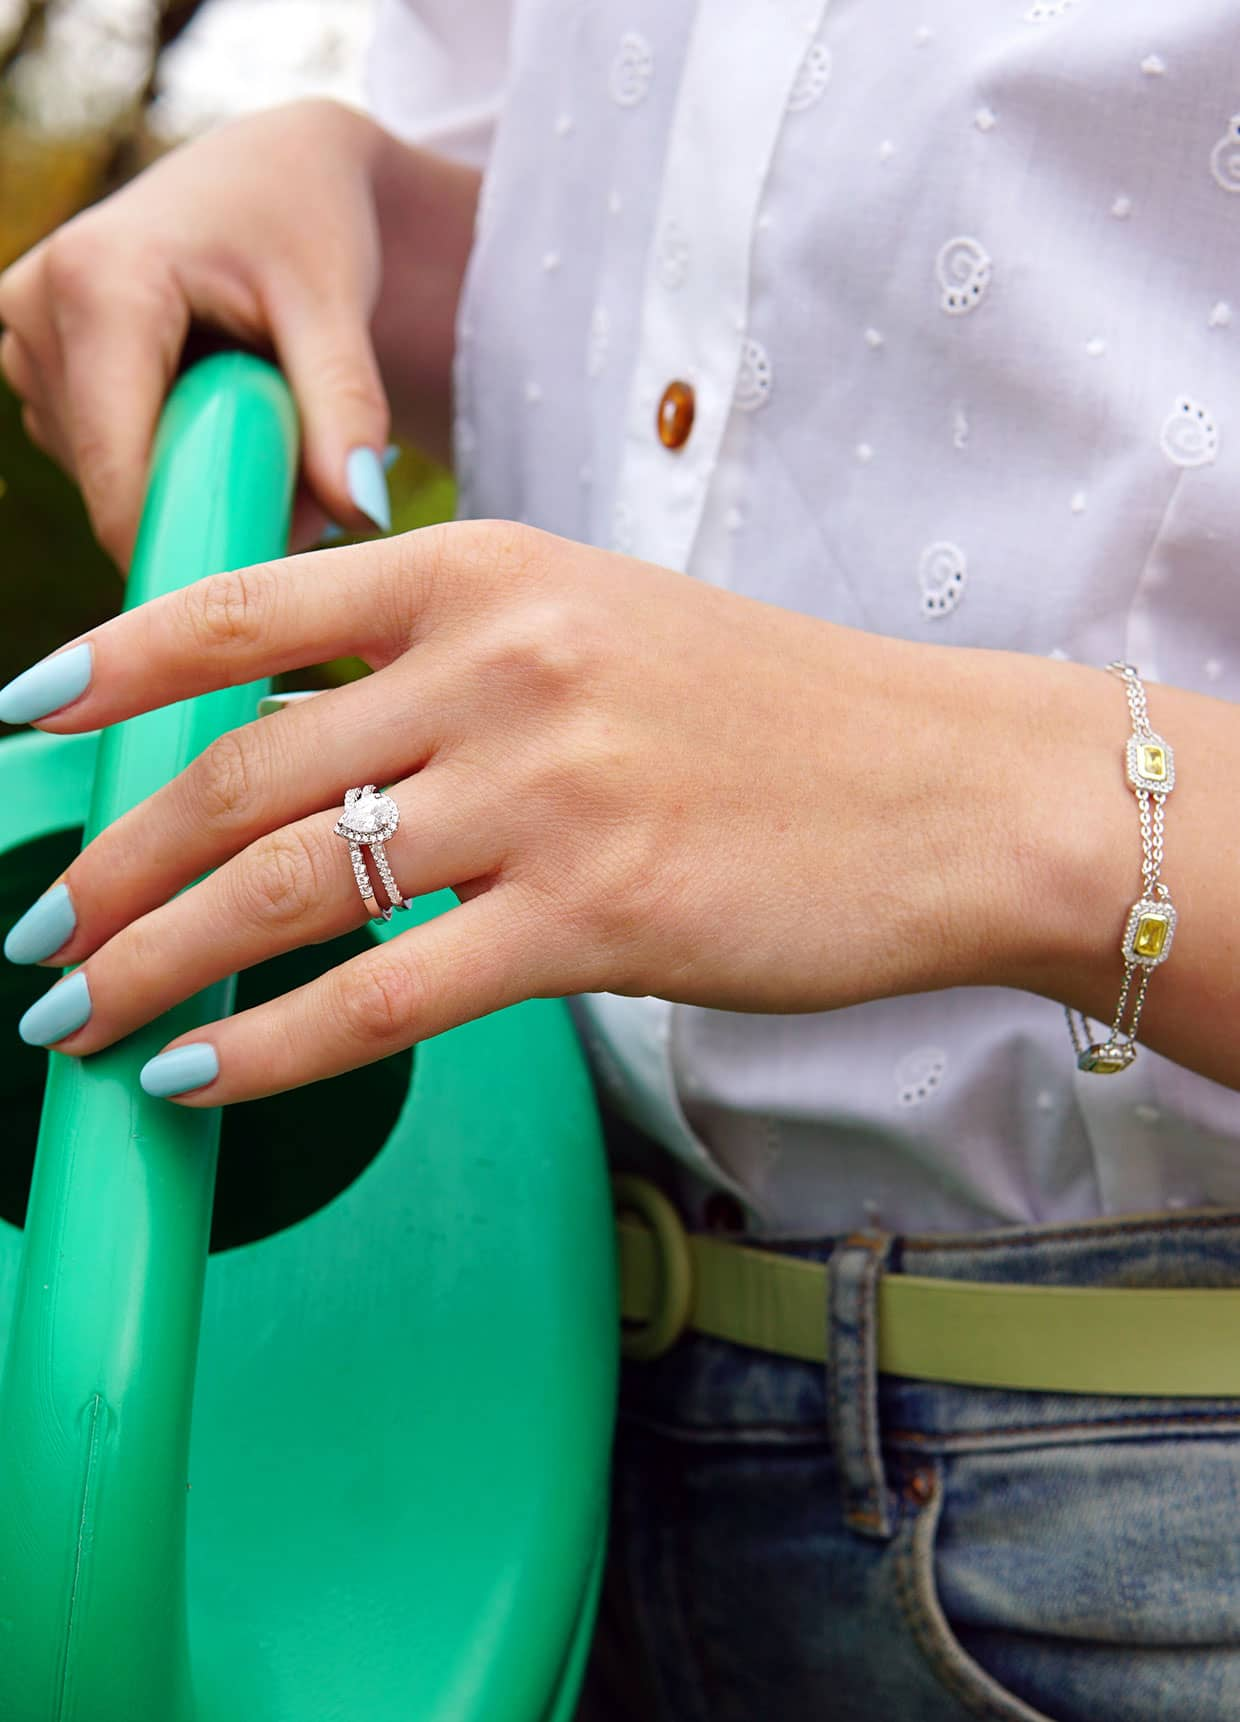 Julie Abelstedt with jewelry outdoors